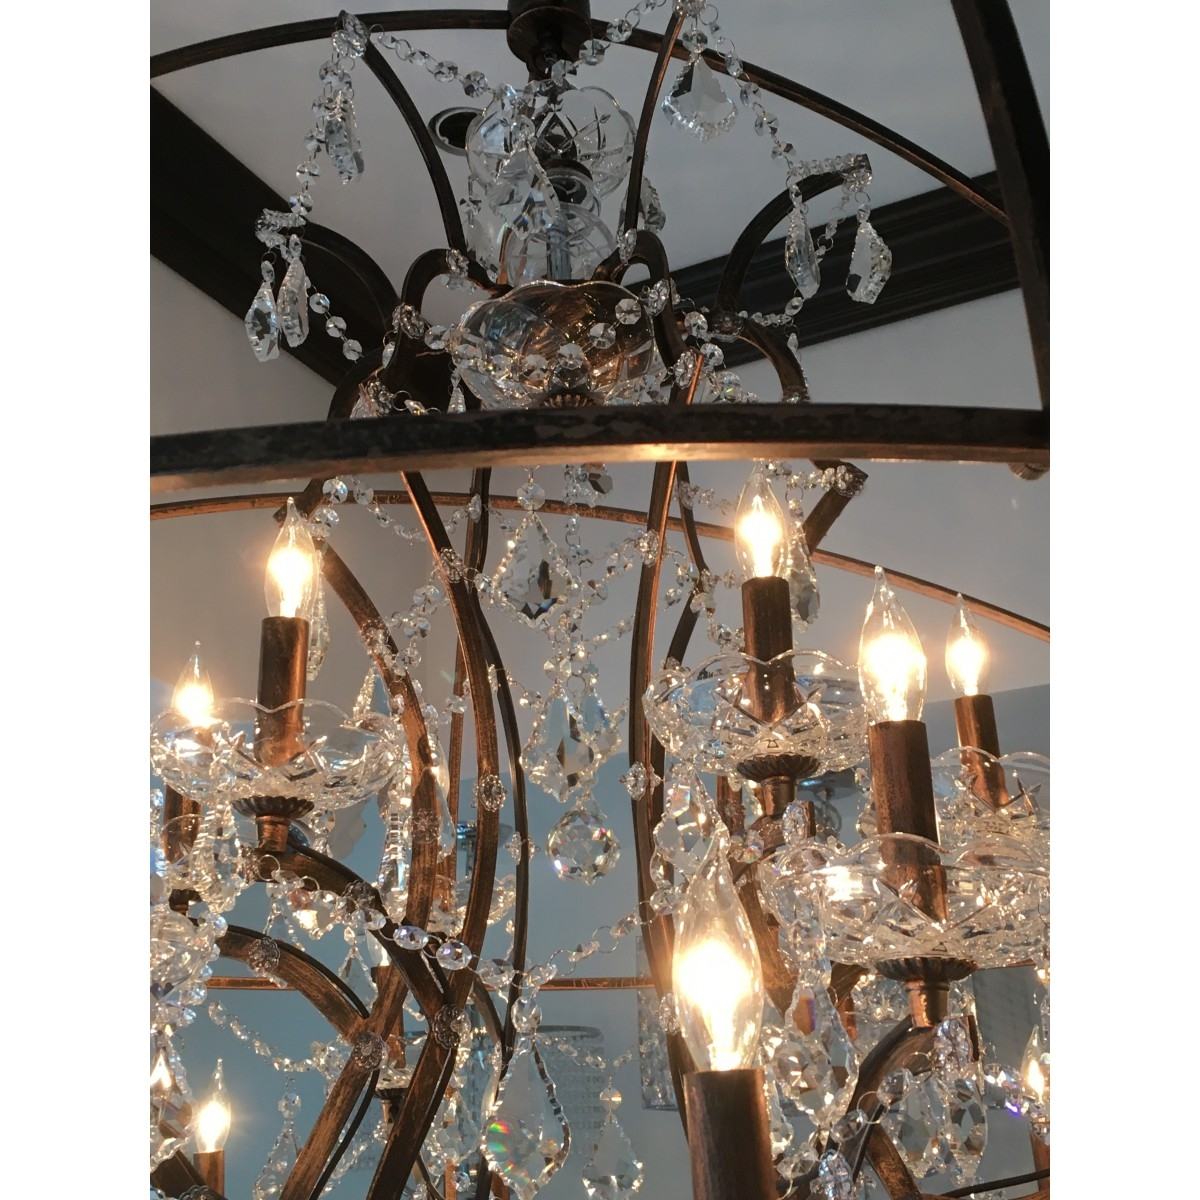 Aspasia Of Athens Ii 25 Lights Solaris Crystals Oversized Pertaining To Oversized Chandeliers (#3 of 12)